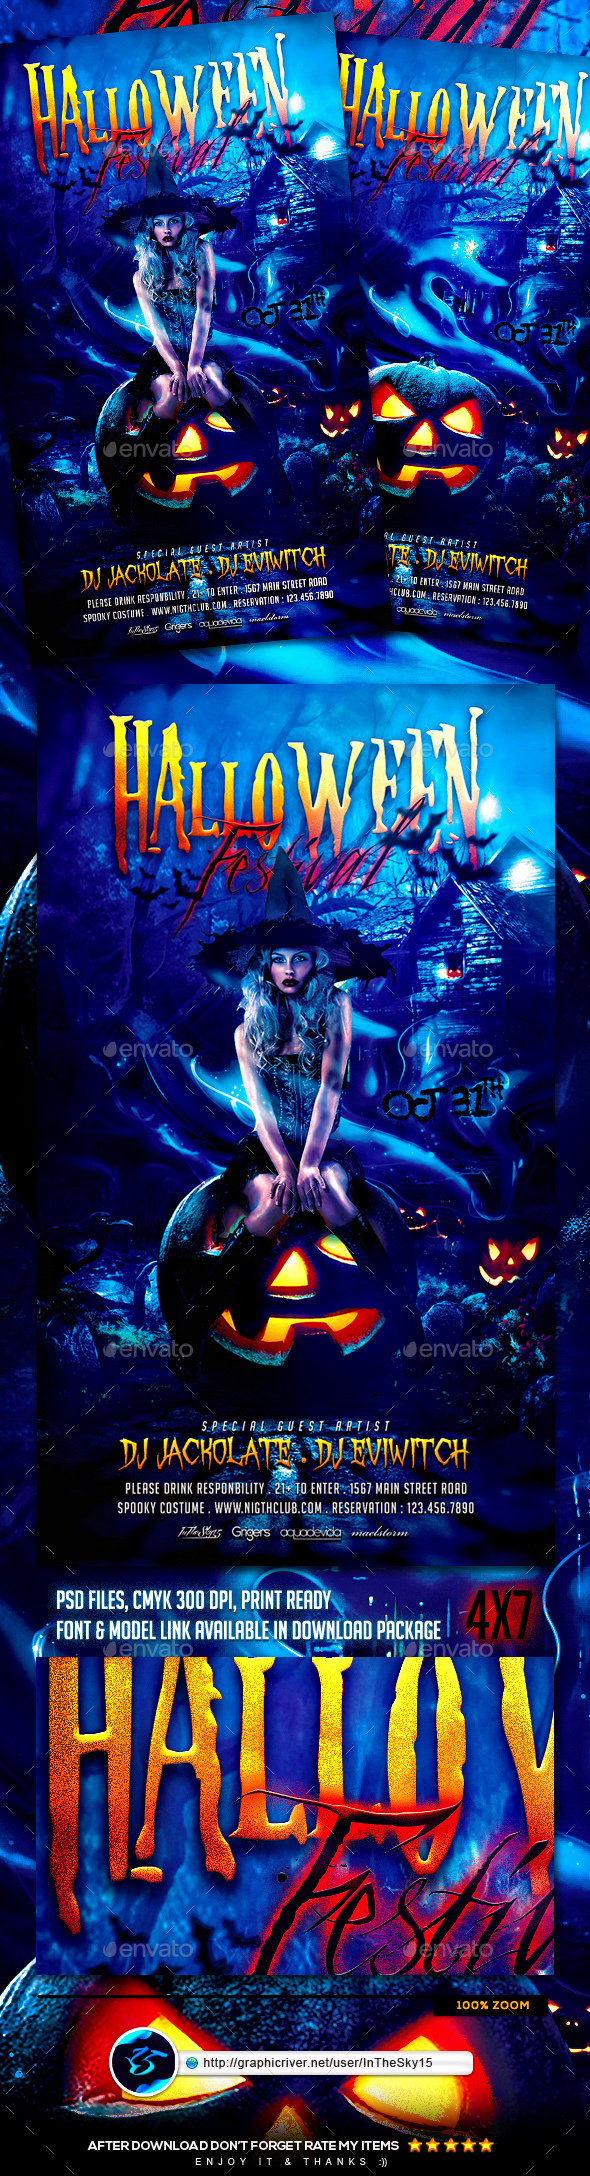 Halloween Festival Flyer Template - Events Flyers